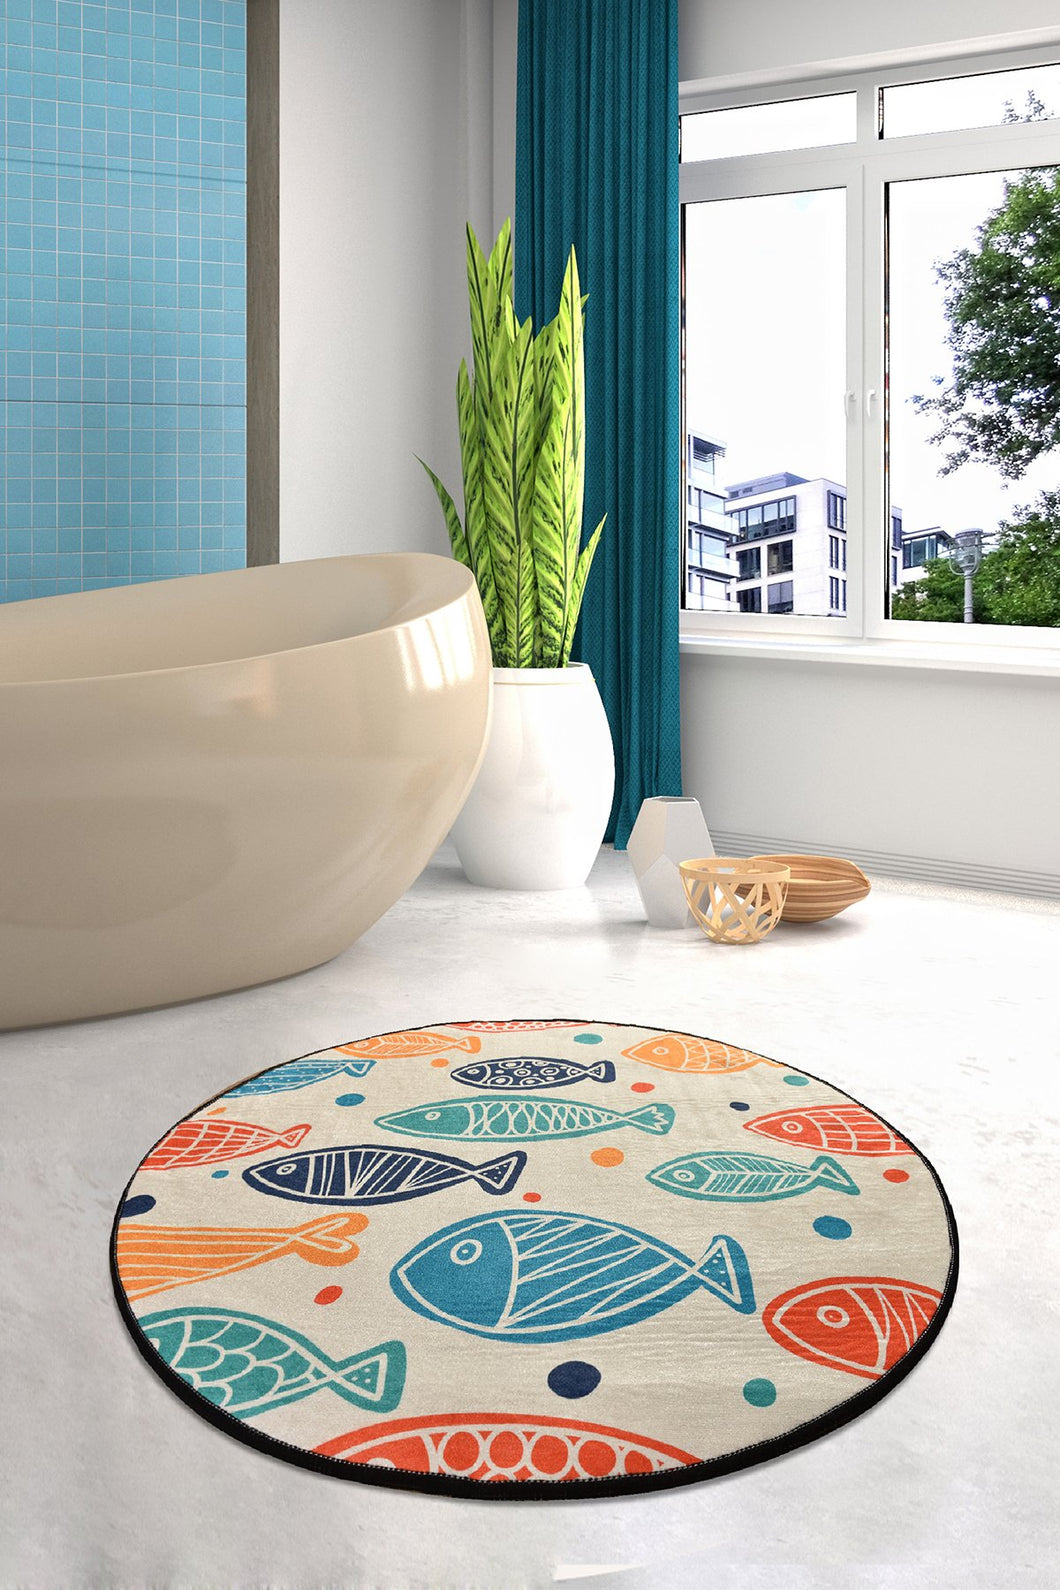 Antdecor  Fish Round Bath Rug Area Rug Round Rug 40